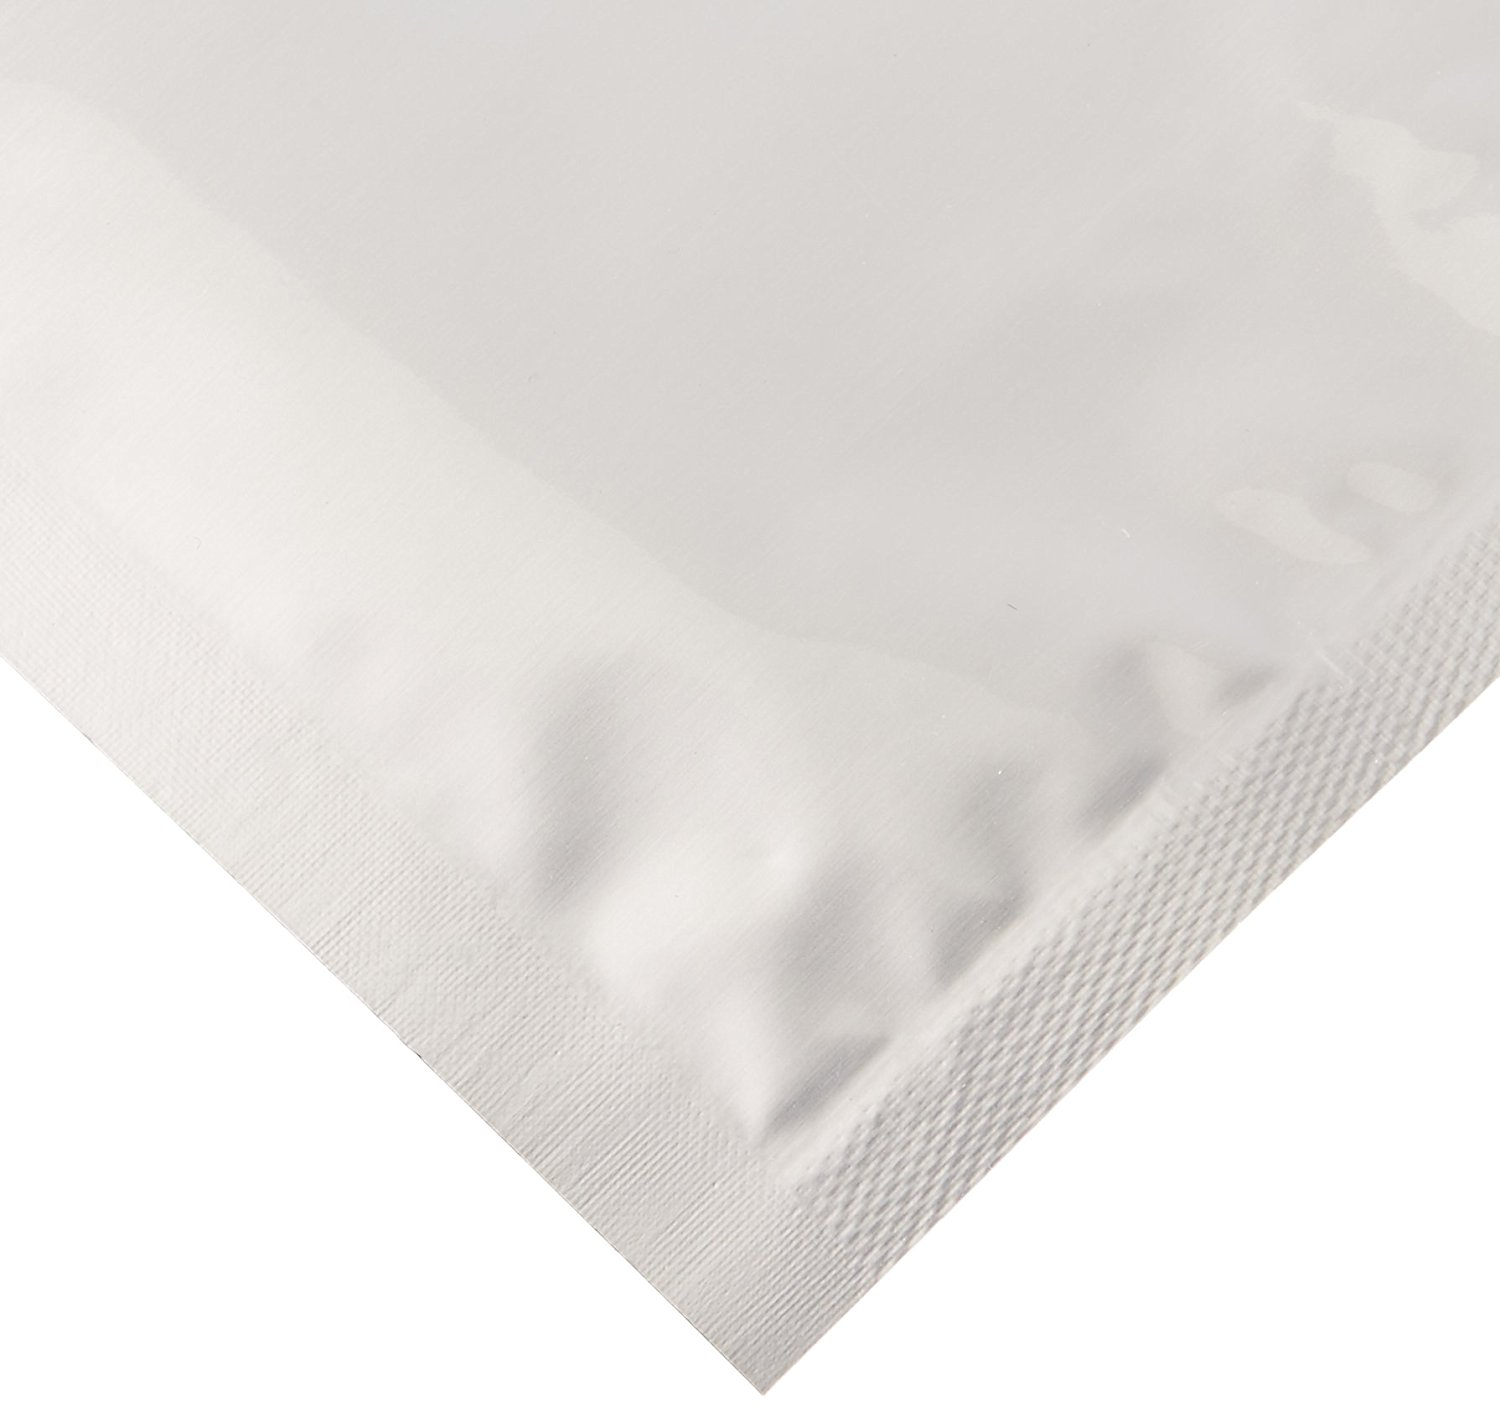 80 - 1 Quart Mylar Bags & Oxygen Absorbers for Dried Food...